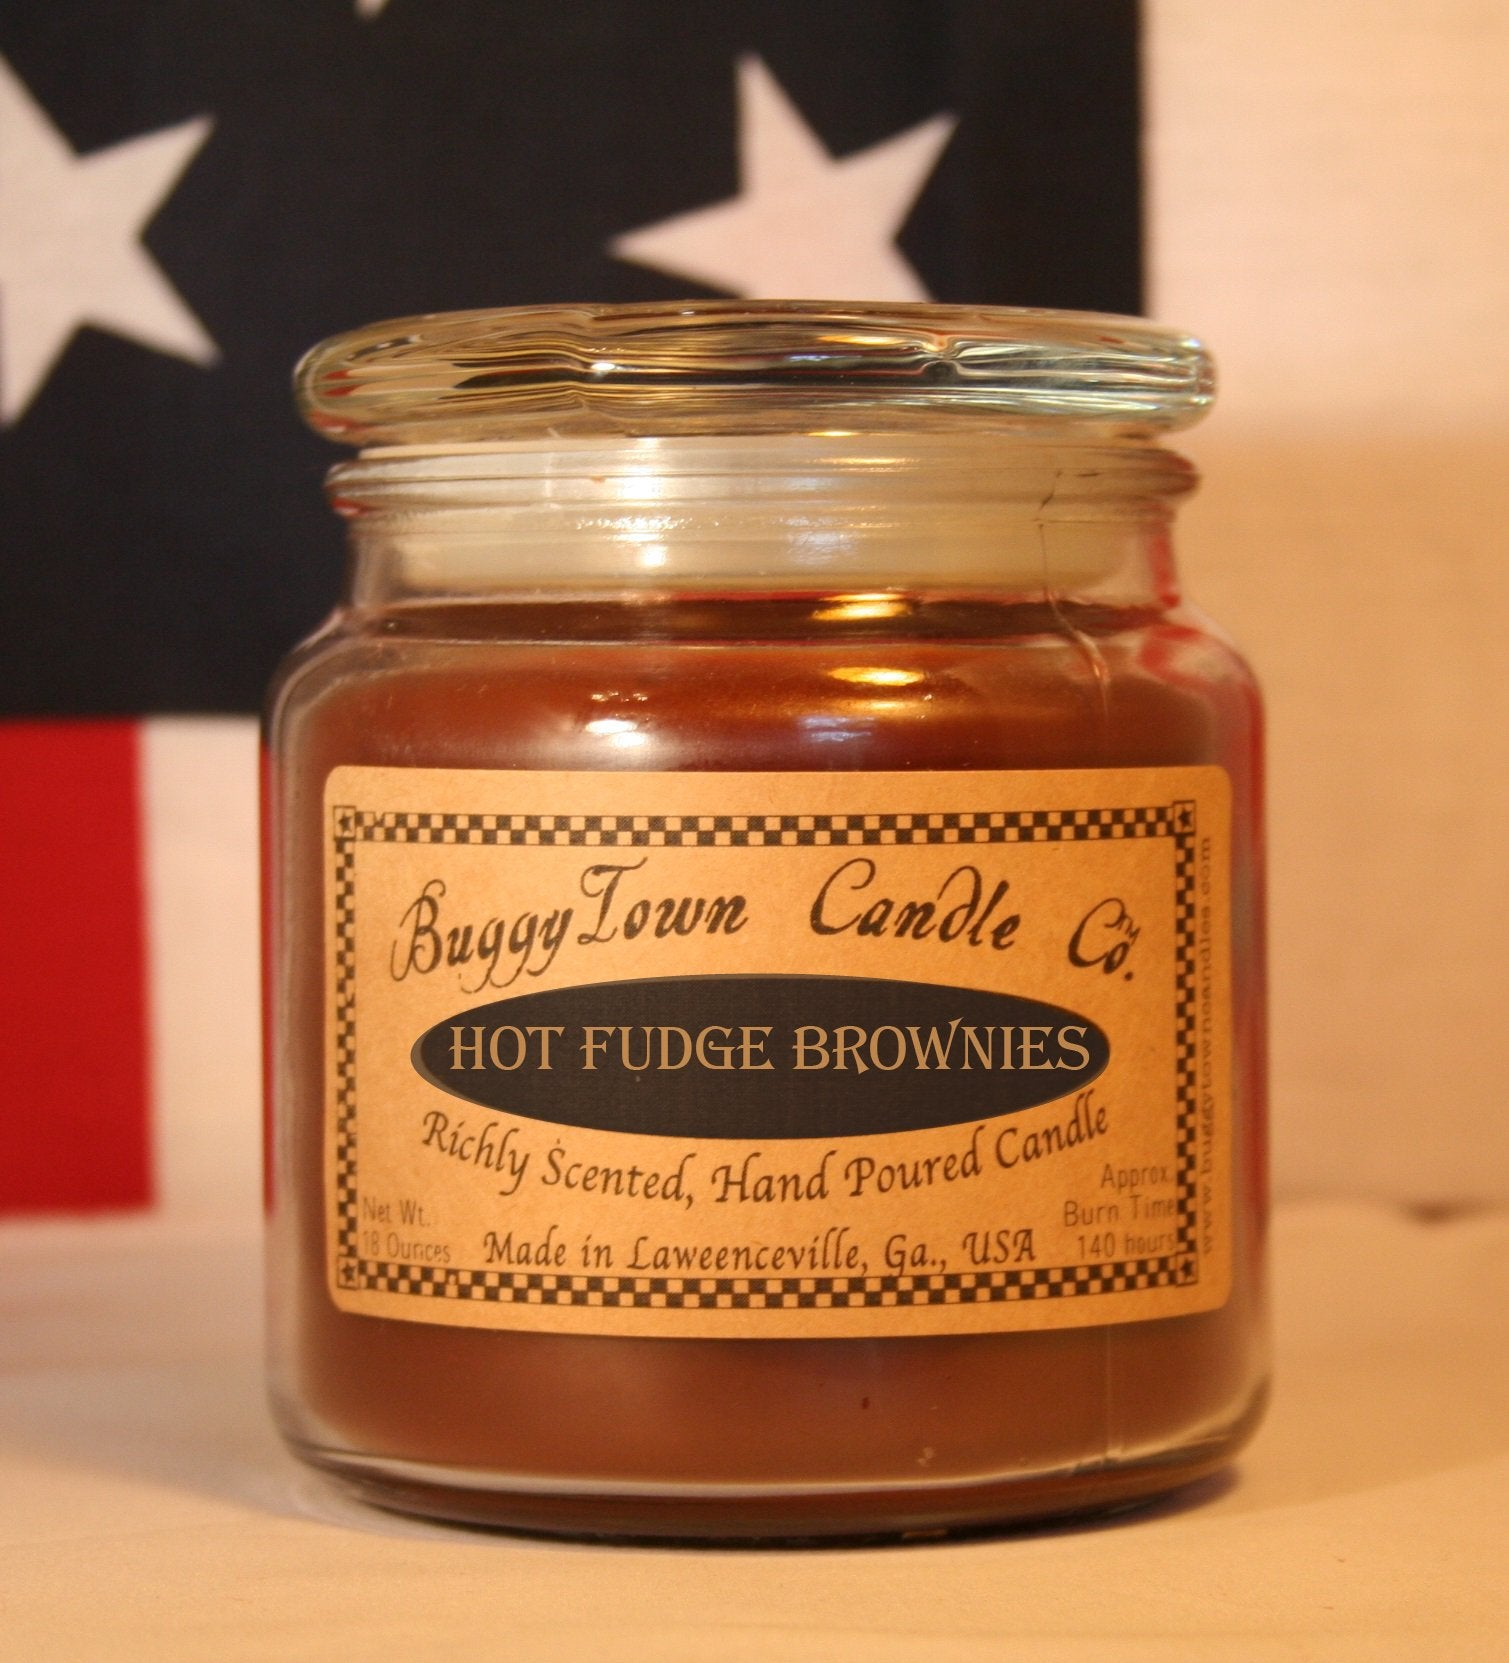 Hot Fudge Brownies Candles